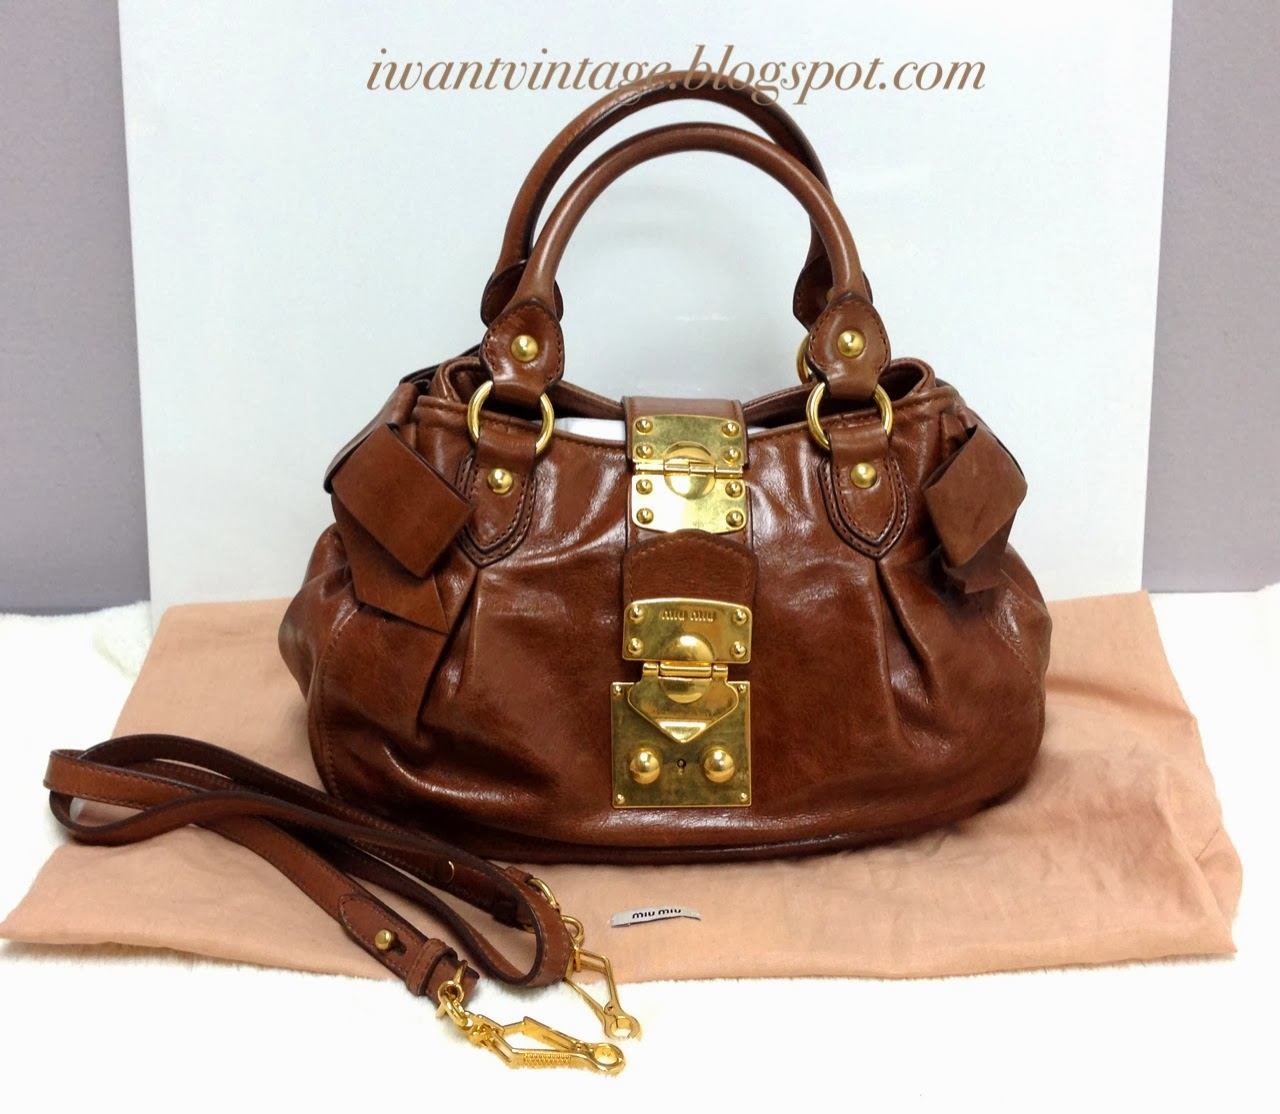 37fae9bd2548 Miu Miu Vitello Lux Bow Satchel northbeat.co.uk